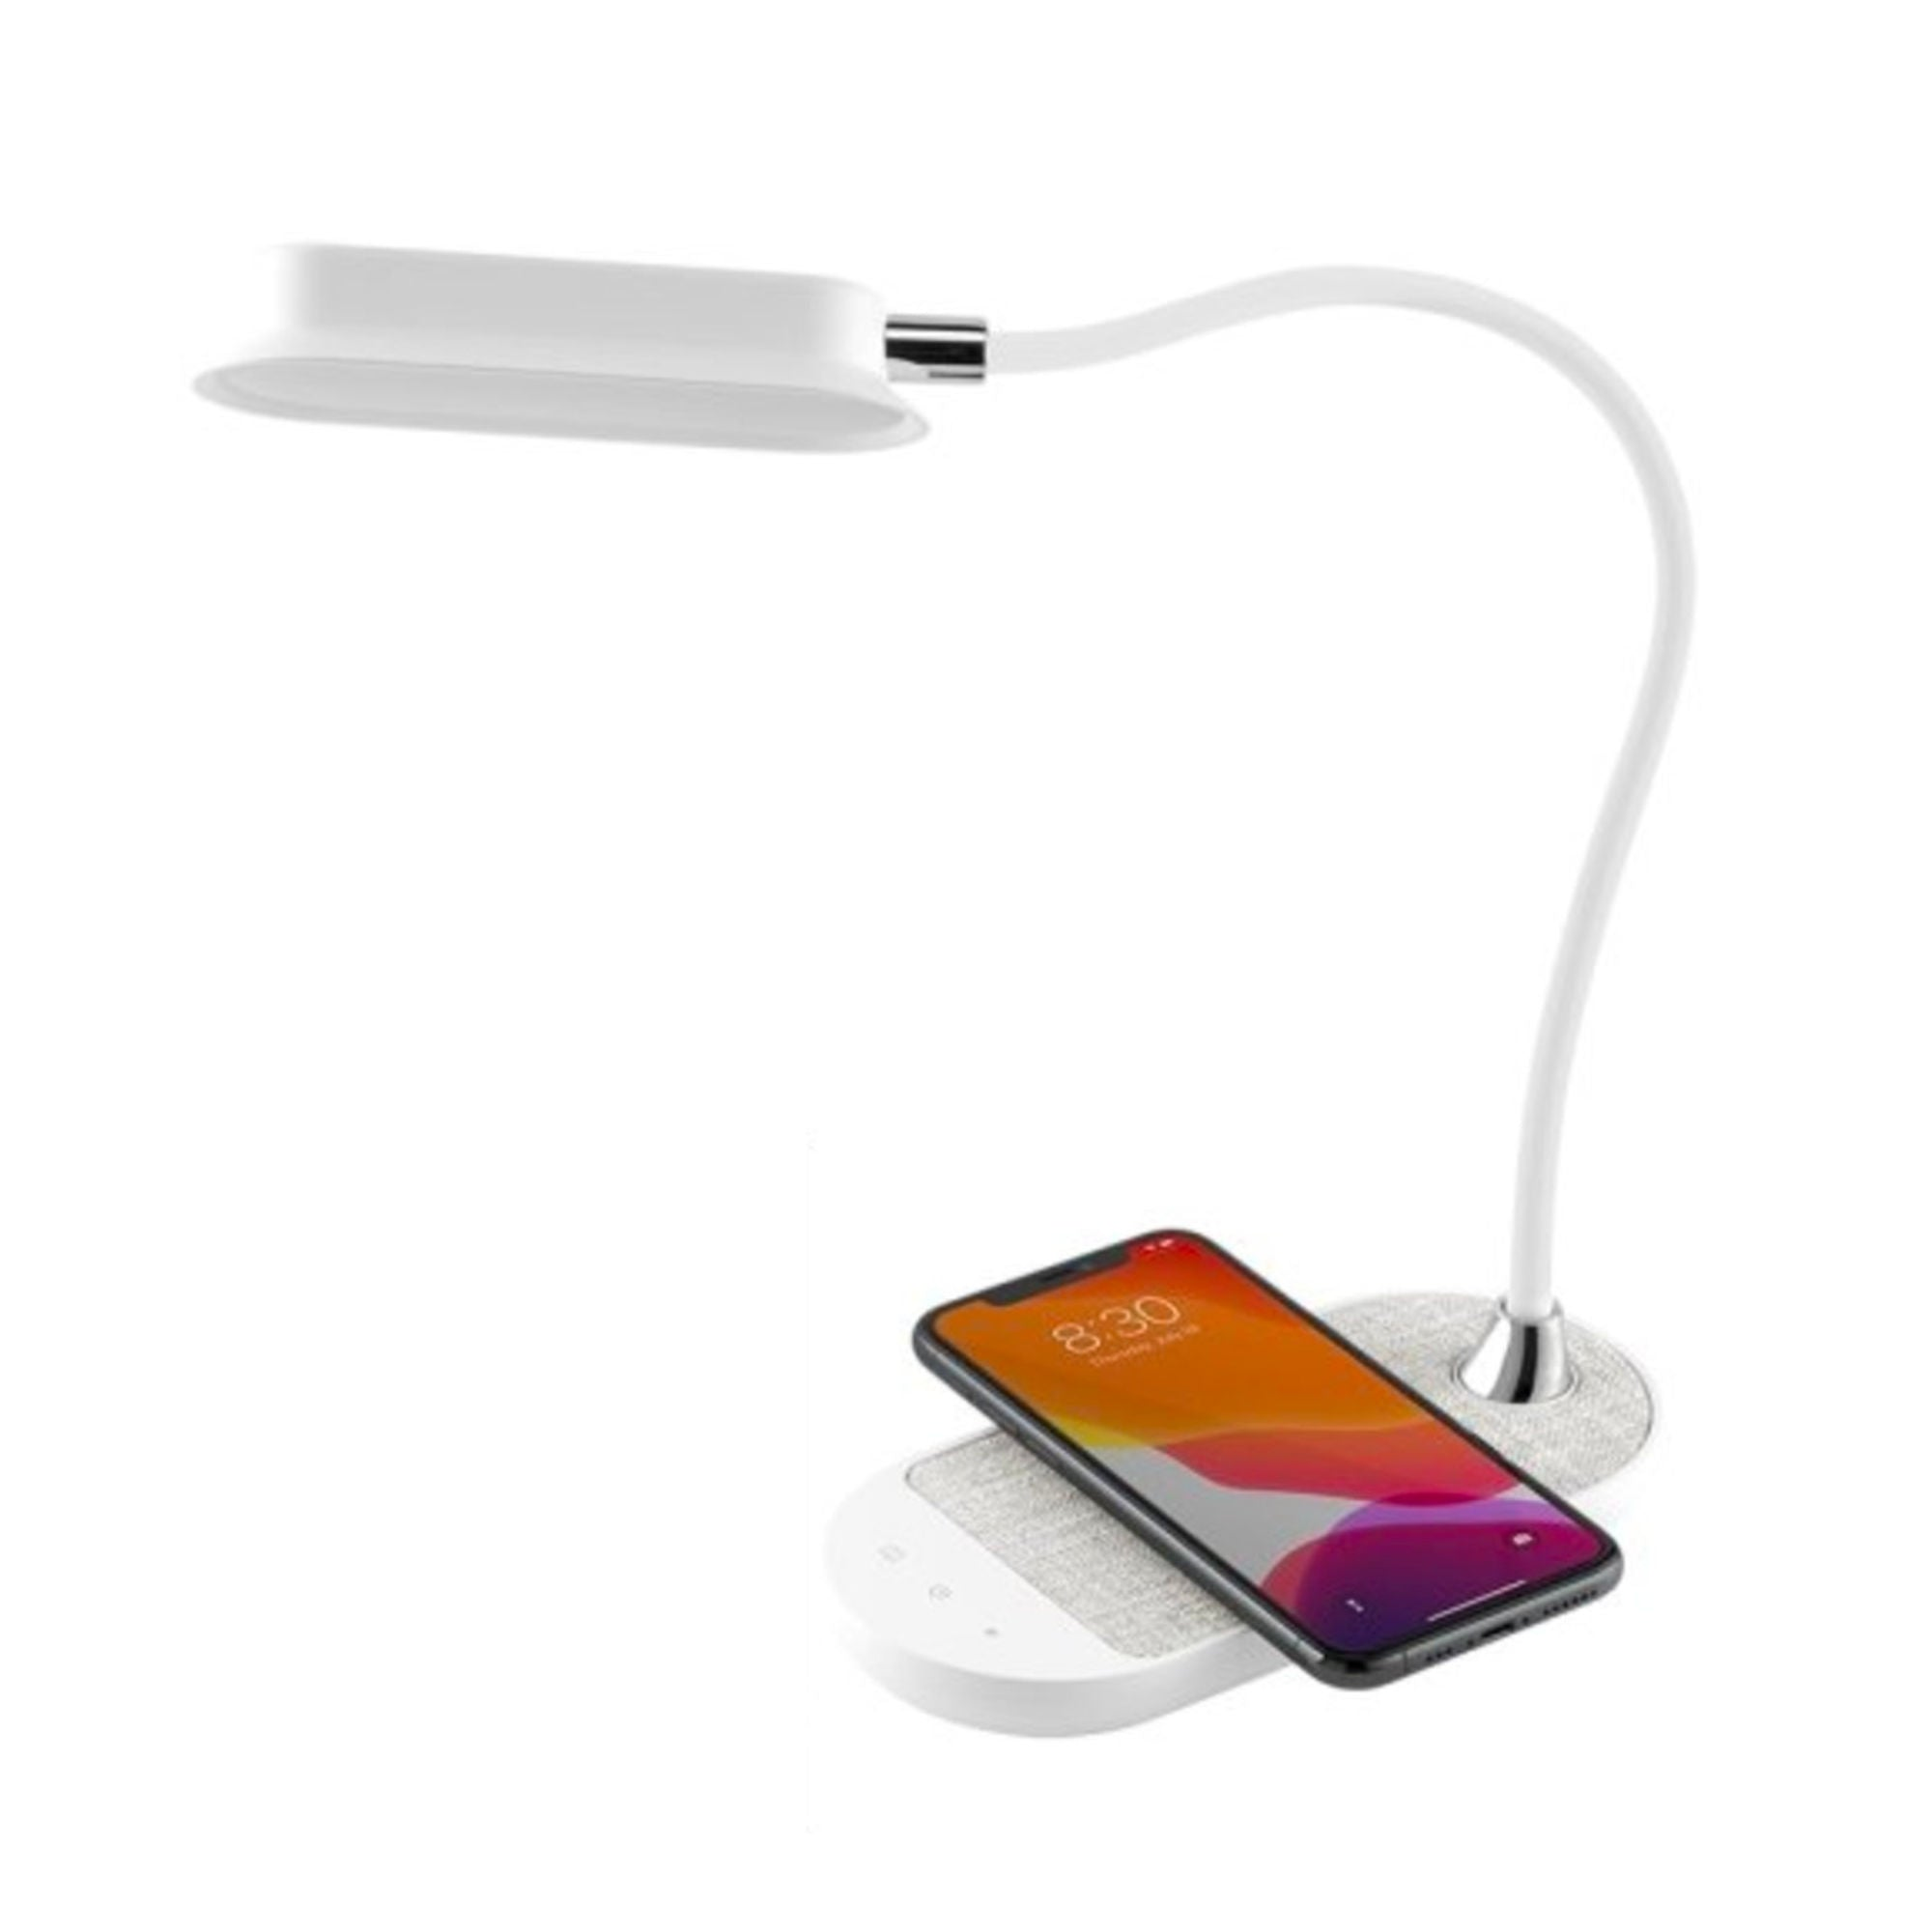 Q.Led Flrx Mini Lamp with wireless charging base